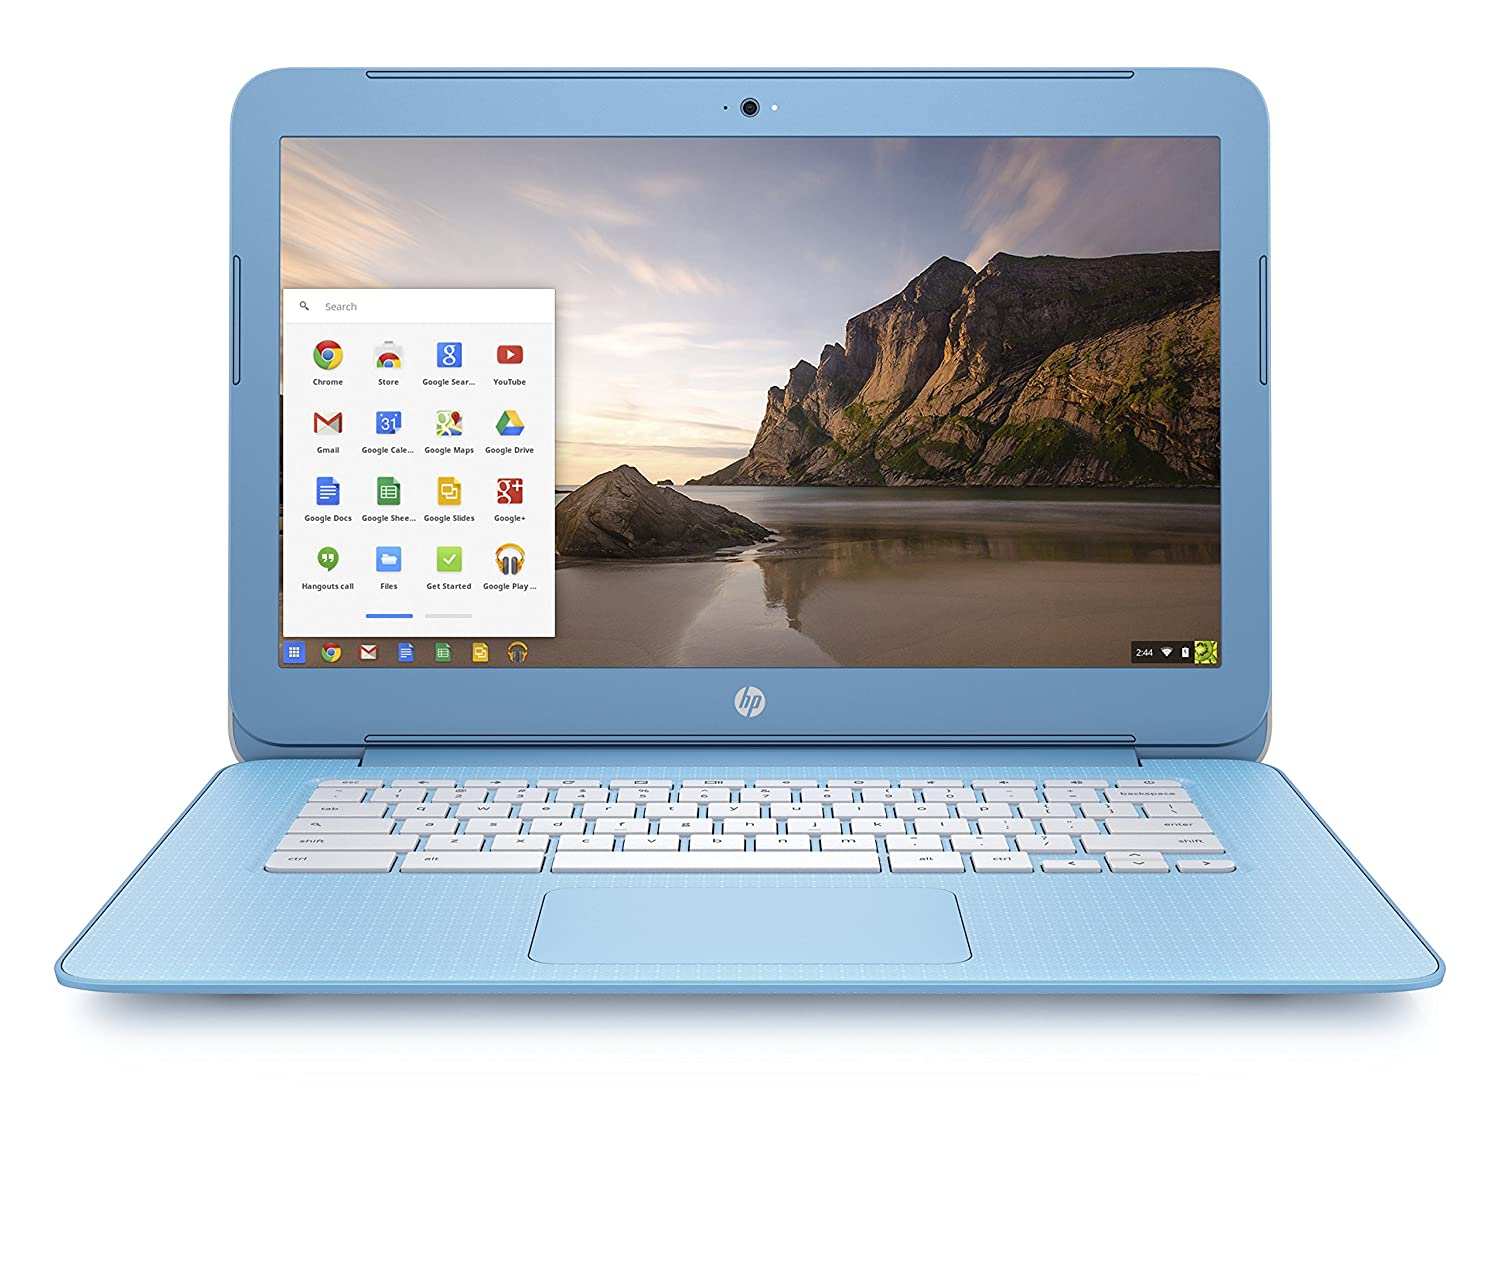 The HP Chromebook 14 is a mid-sized Chromebook that has all the basics.